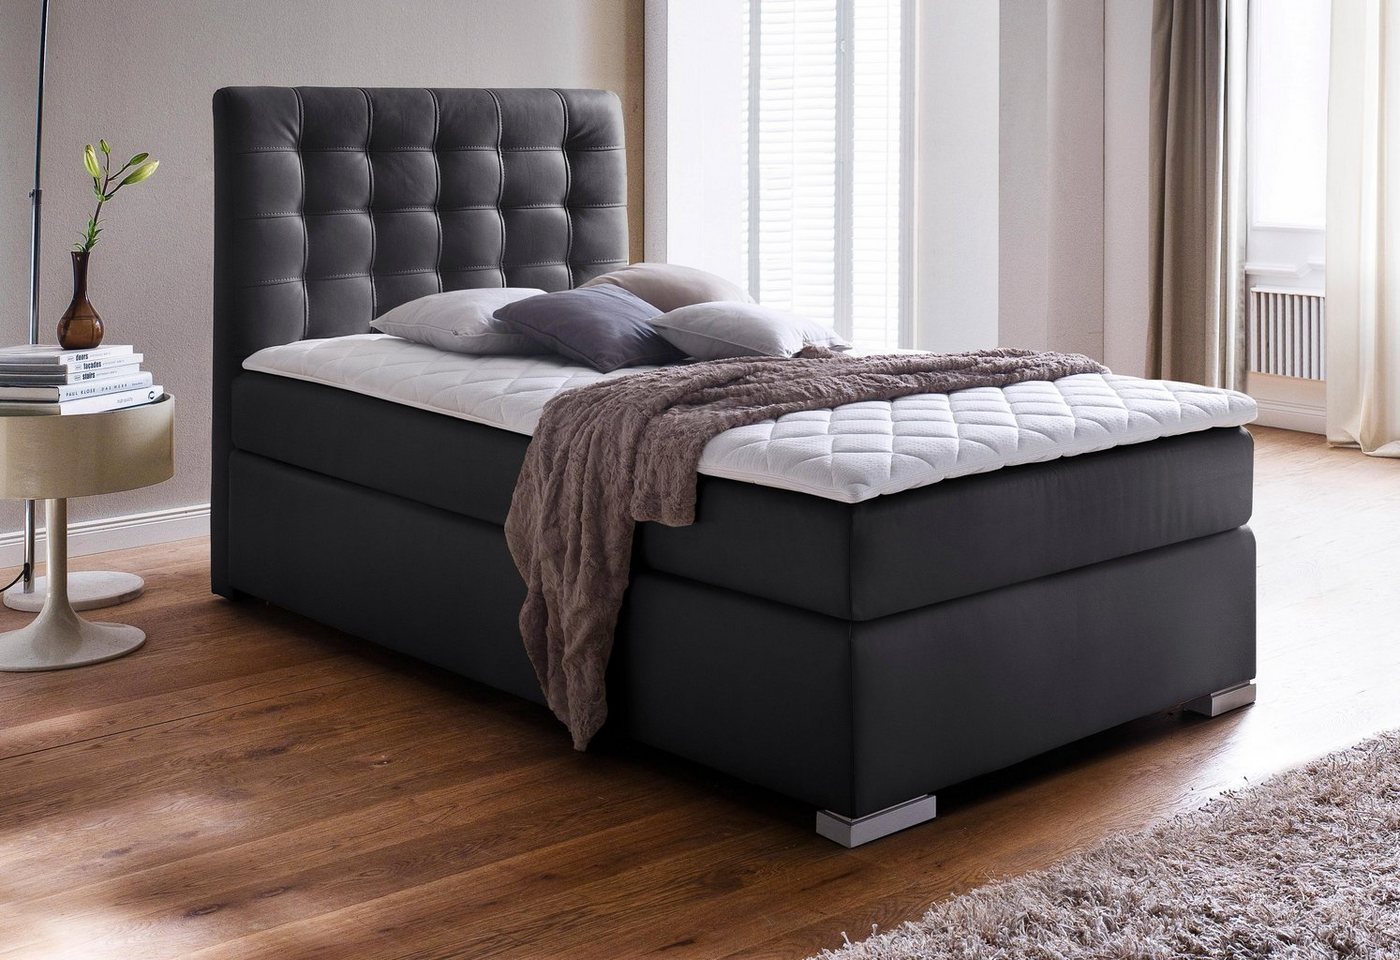 MEISE Boxspring met stiksels